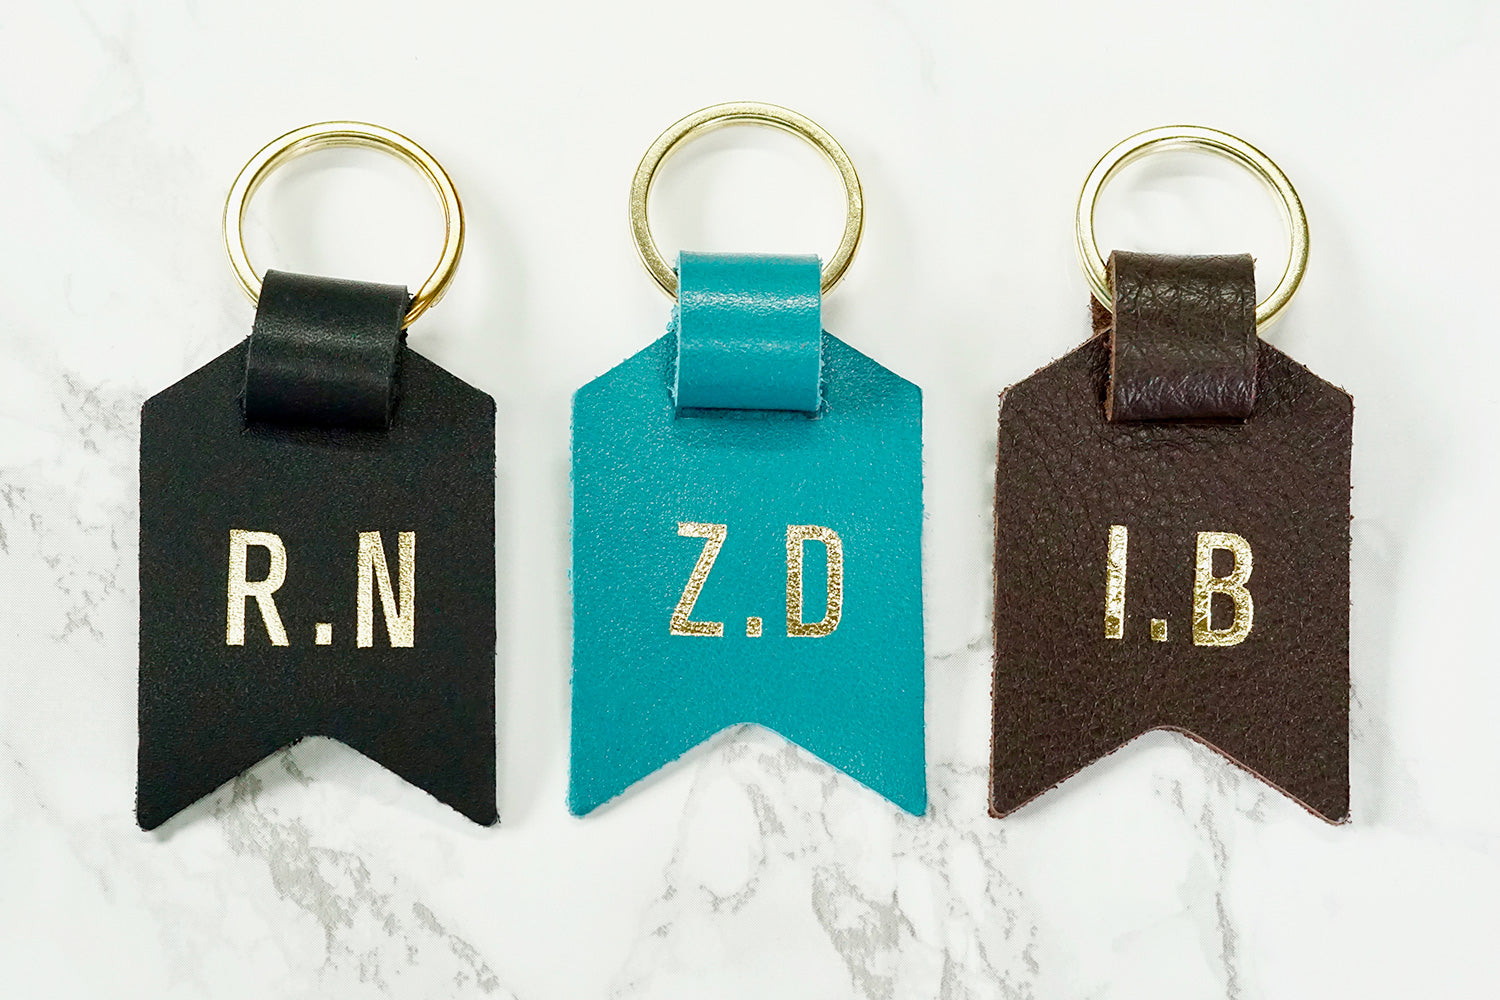 Monogram keychain from Bookshell bindery